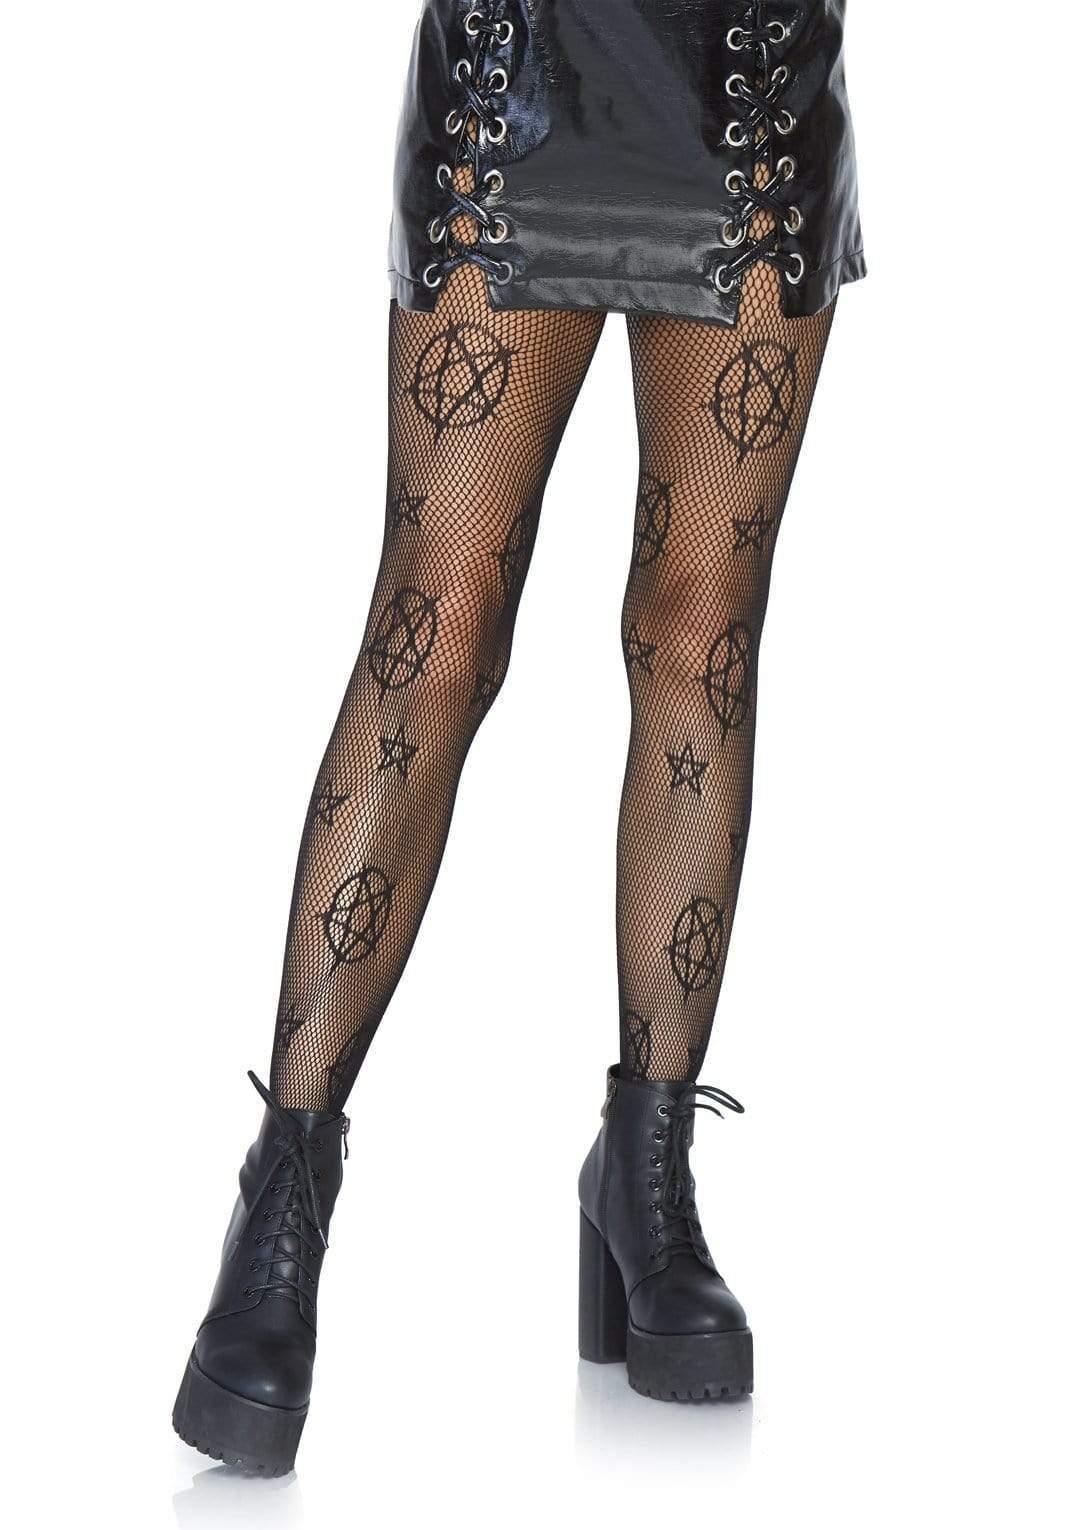 legavenue.com Occult Symbol Fishnet Tights